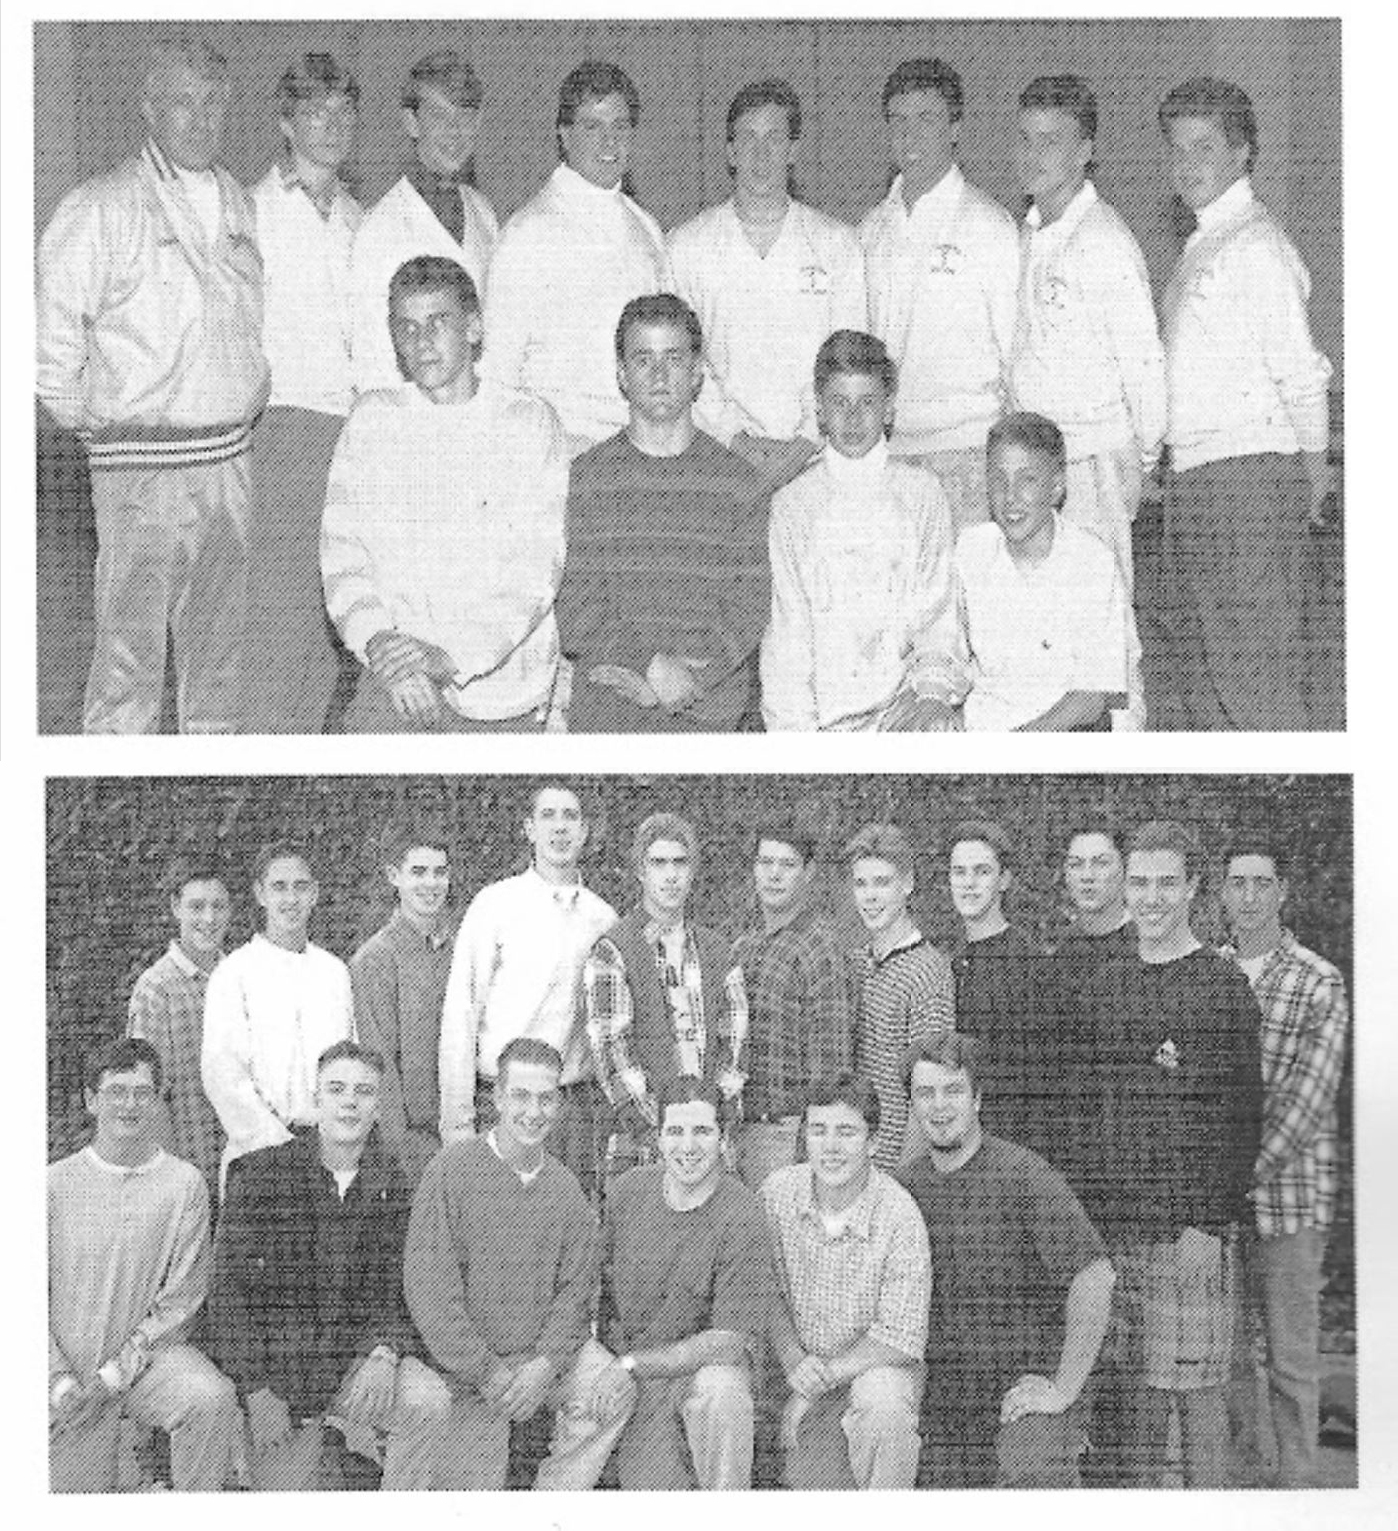 Boy's Golf Dynasty of Teams Team of Distinction, 1988 - 1999